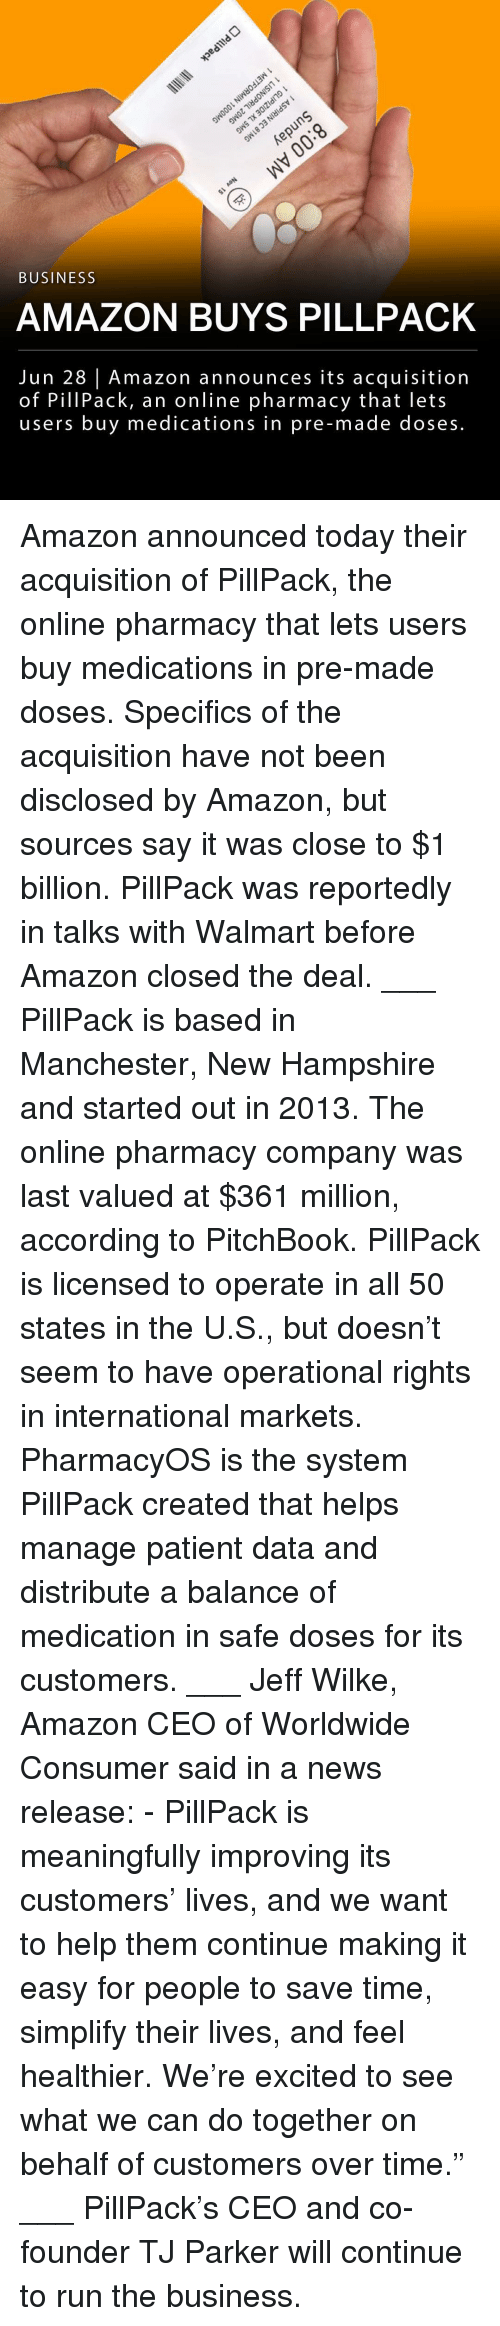 "Amazon, Memes, and News: 3  BUSINESS  AMAZON BUYS PILLPACK  Jun 28 | Amazon announces its acquisition  of PillPack, an online pharmacy that lets  users buy medications in pre-made doses. Amazon announced today their acquisition of PillPack, the online pharmacy that lets users buy medications in pre-made doses. Specifics of the acquisition have not been disclosed by Amazon, but sources say it was close to $1 billion. PillPack was reportedly in talks with Walmart before Amazon closed the deal. ___ PillPack is based in Manchester, New Hampshire and started out in 2013. The online pharmacy company was last valued at $361 million, according to PitchBook. PillPack is licensed to operate in all 50 states in the U.S., but doesn't seem to have operational rights in international markets. PharmacyOS is the system PillPack created that helps manage patient data and distribute a balance of medication in safe doses for its customers. ___ Jeff Wilke, Amazon CEO of Worldwide Consumer said in a news release: - PillPack is meaningfully improving its customers' lives, and we want to help them continue making it easy for people to save time, simplify their lives, and feel healthier. We're excited to see what we can do together on behalf of customers over time."" ___ PillPack's CEO and co-founder TJ Parker will continue to run the business."